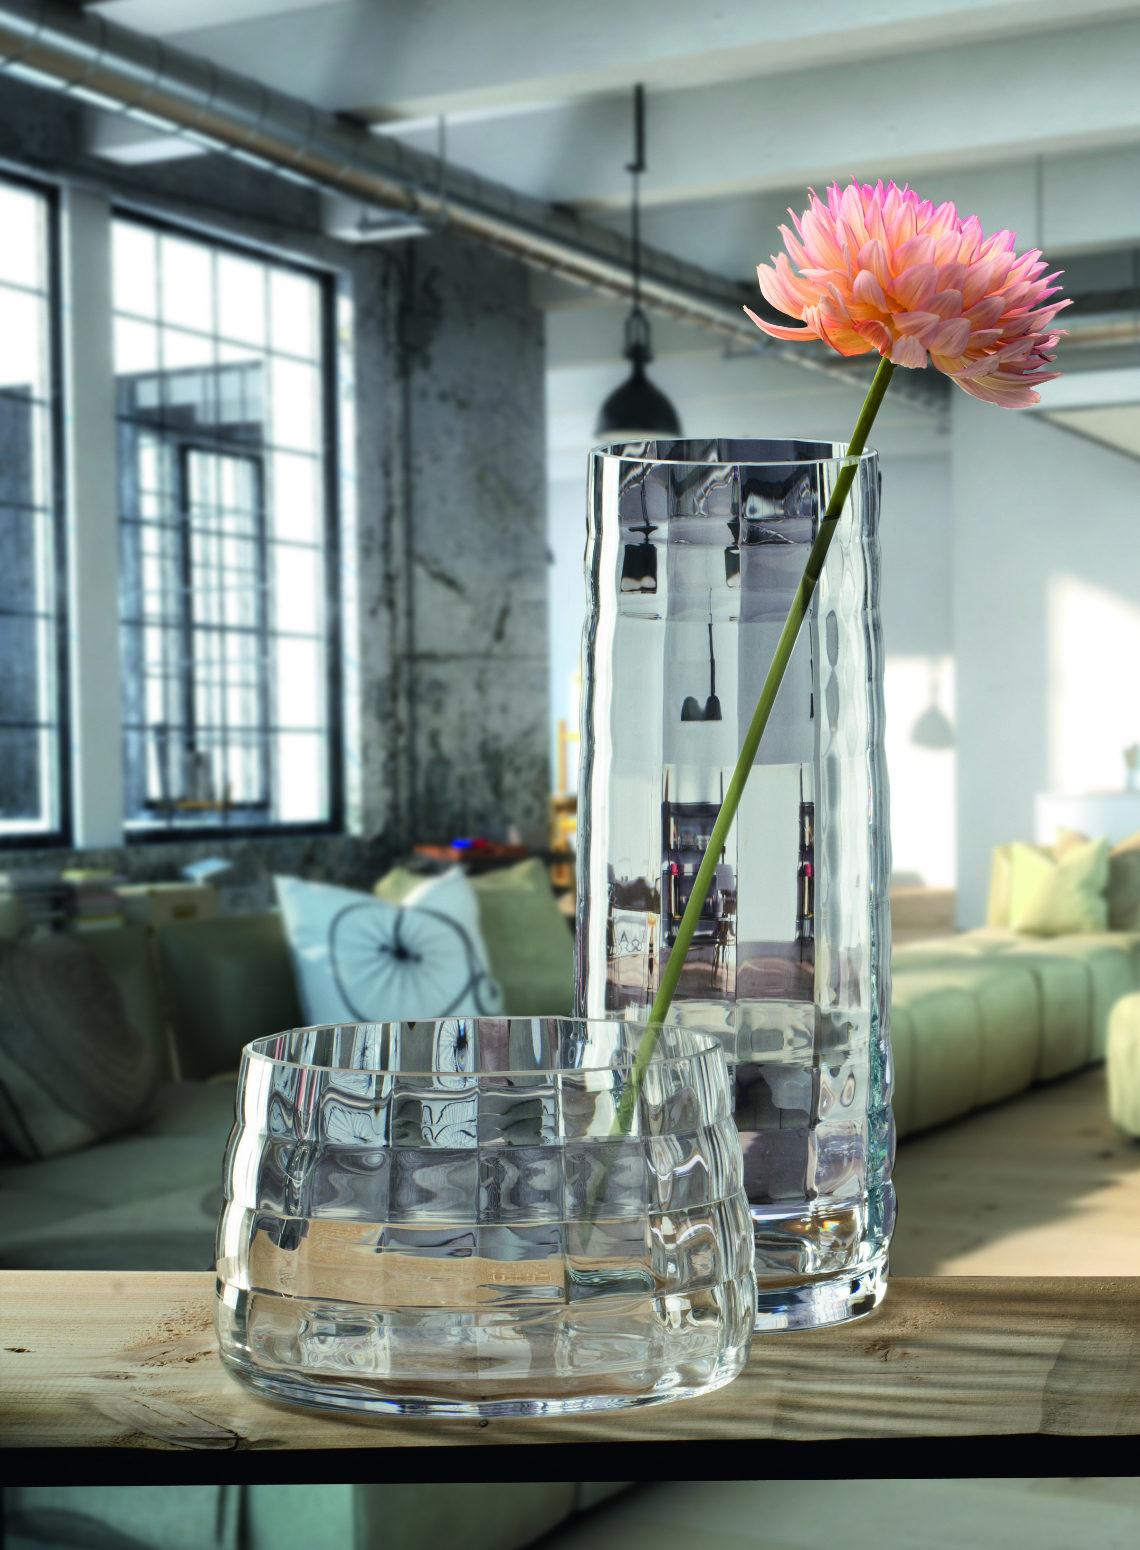 lead crystal vase made in poland of searching for treasures dont look too far ambassador with regard to while the krosno glass is appreciated for its simplicity and perfect clarity collections of the wrzea›niak glassworks brand from tadeusz wrzea›niaks glass